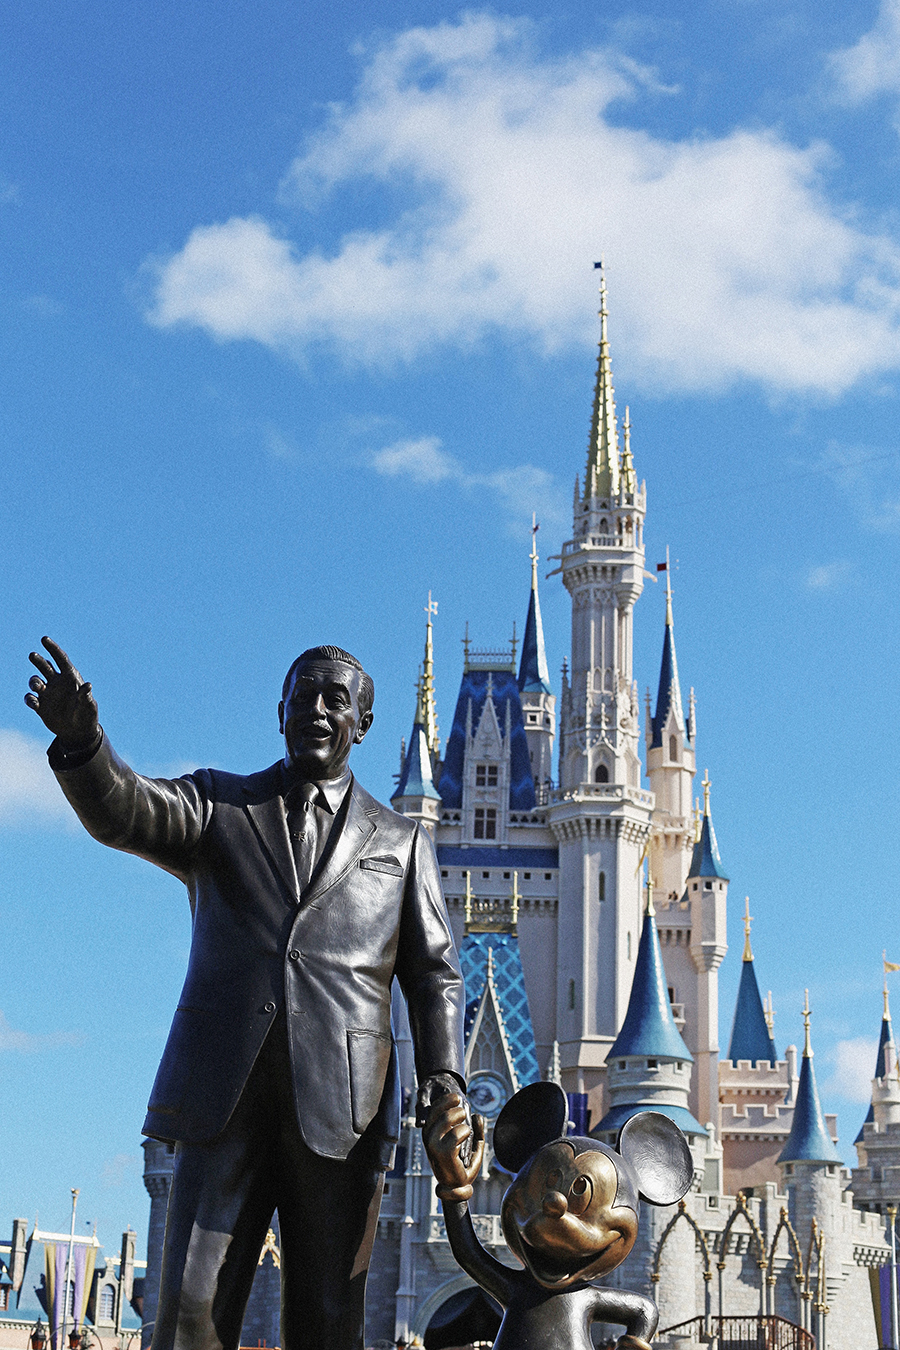 Walt Disney World in Orlando, Florida.